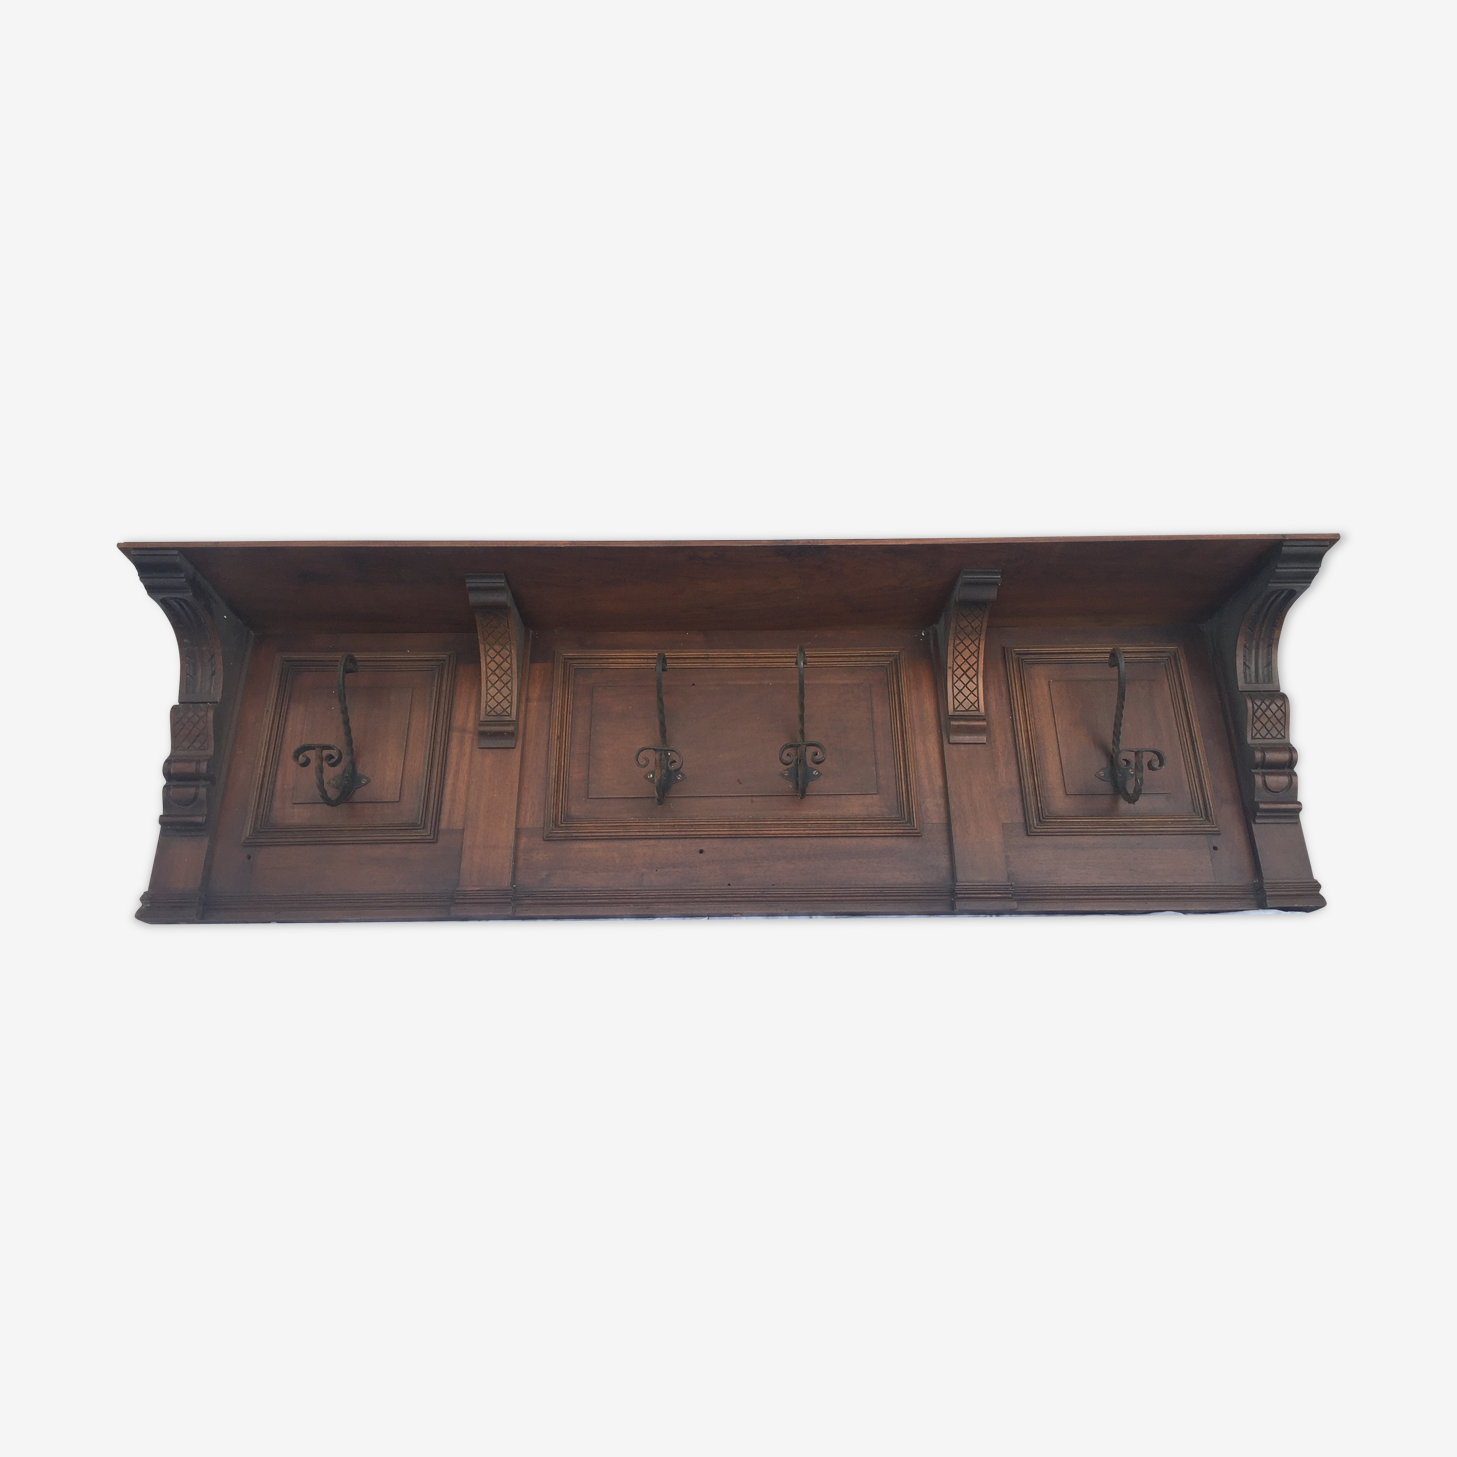 Former coat rack wall decoration woodwork